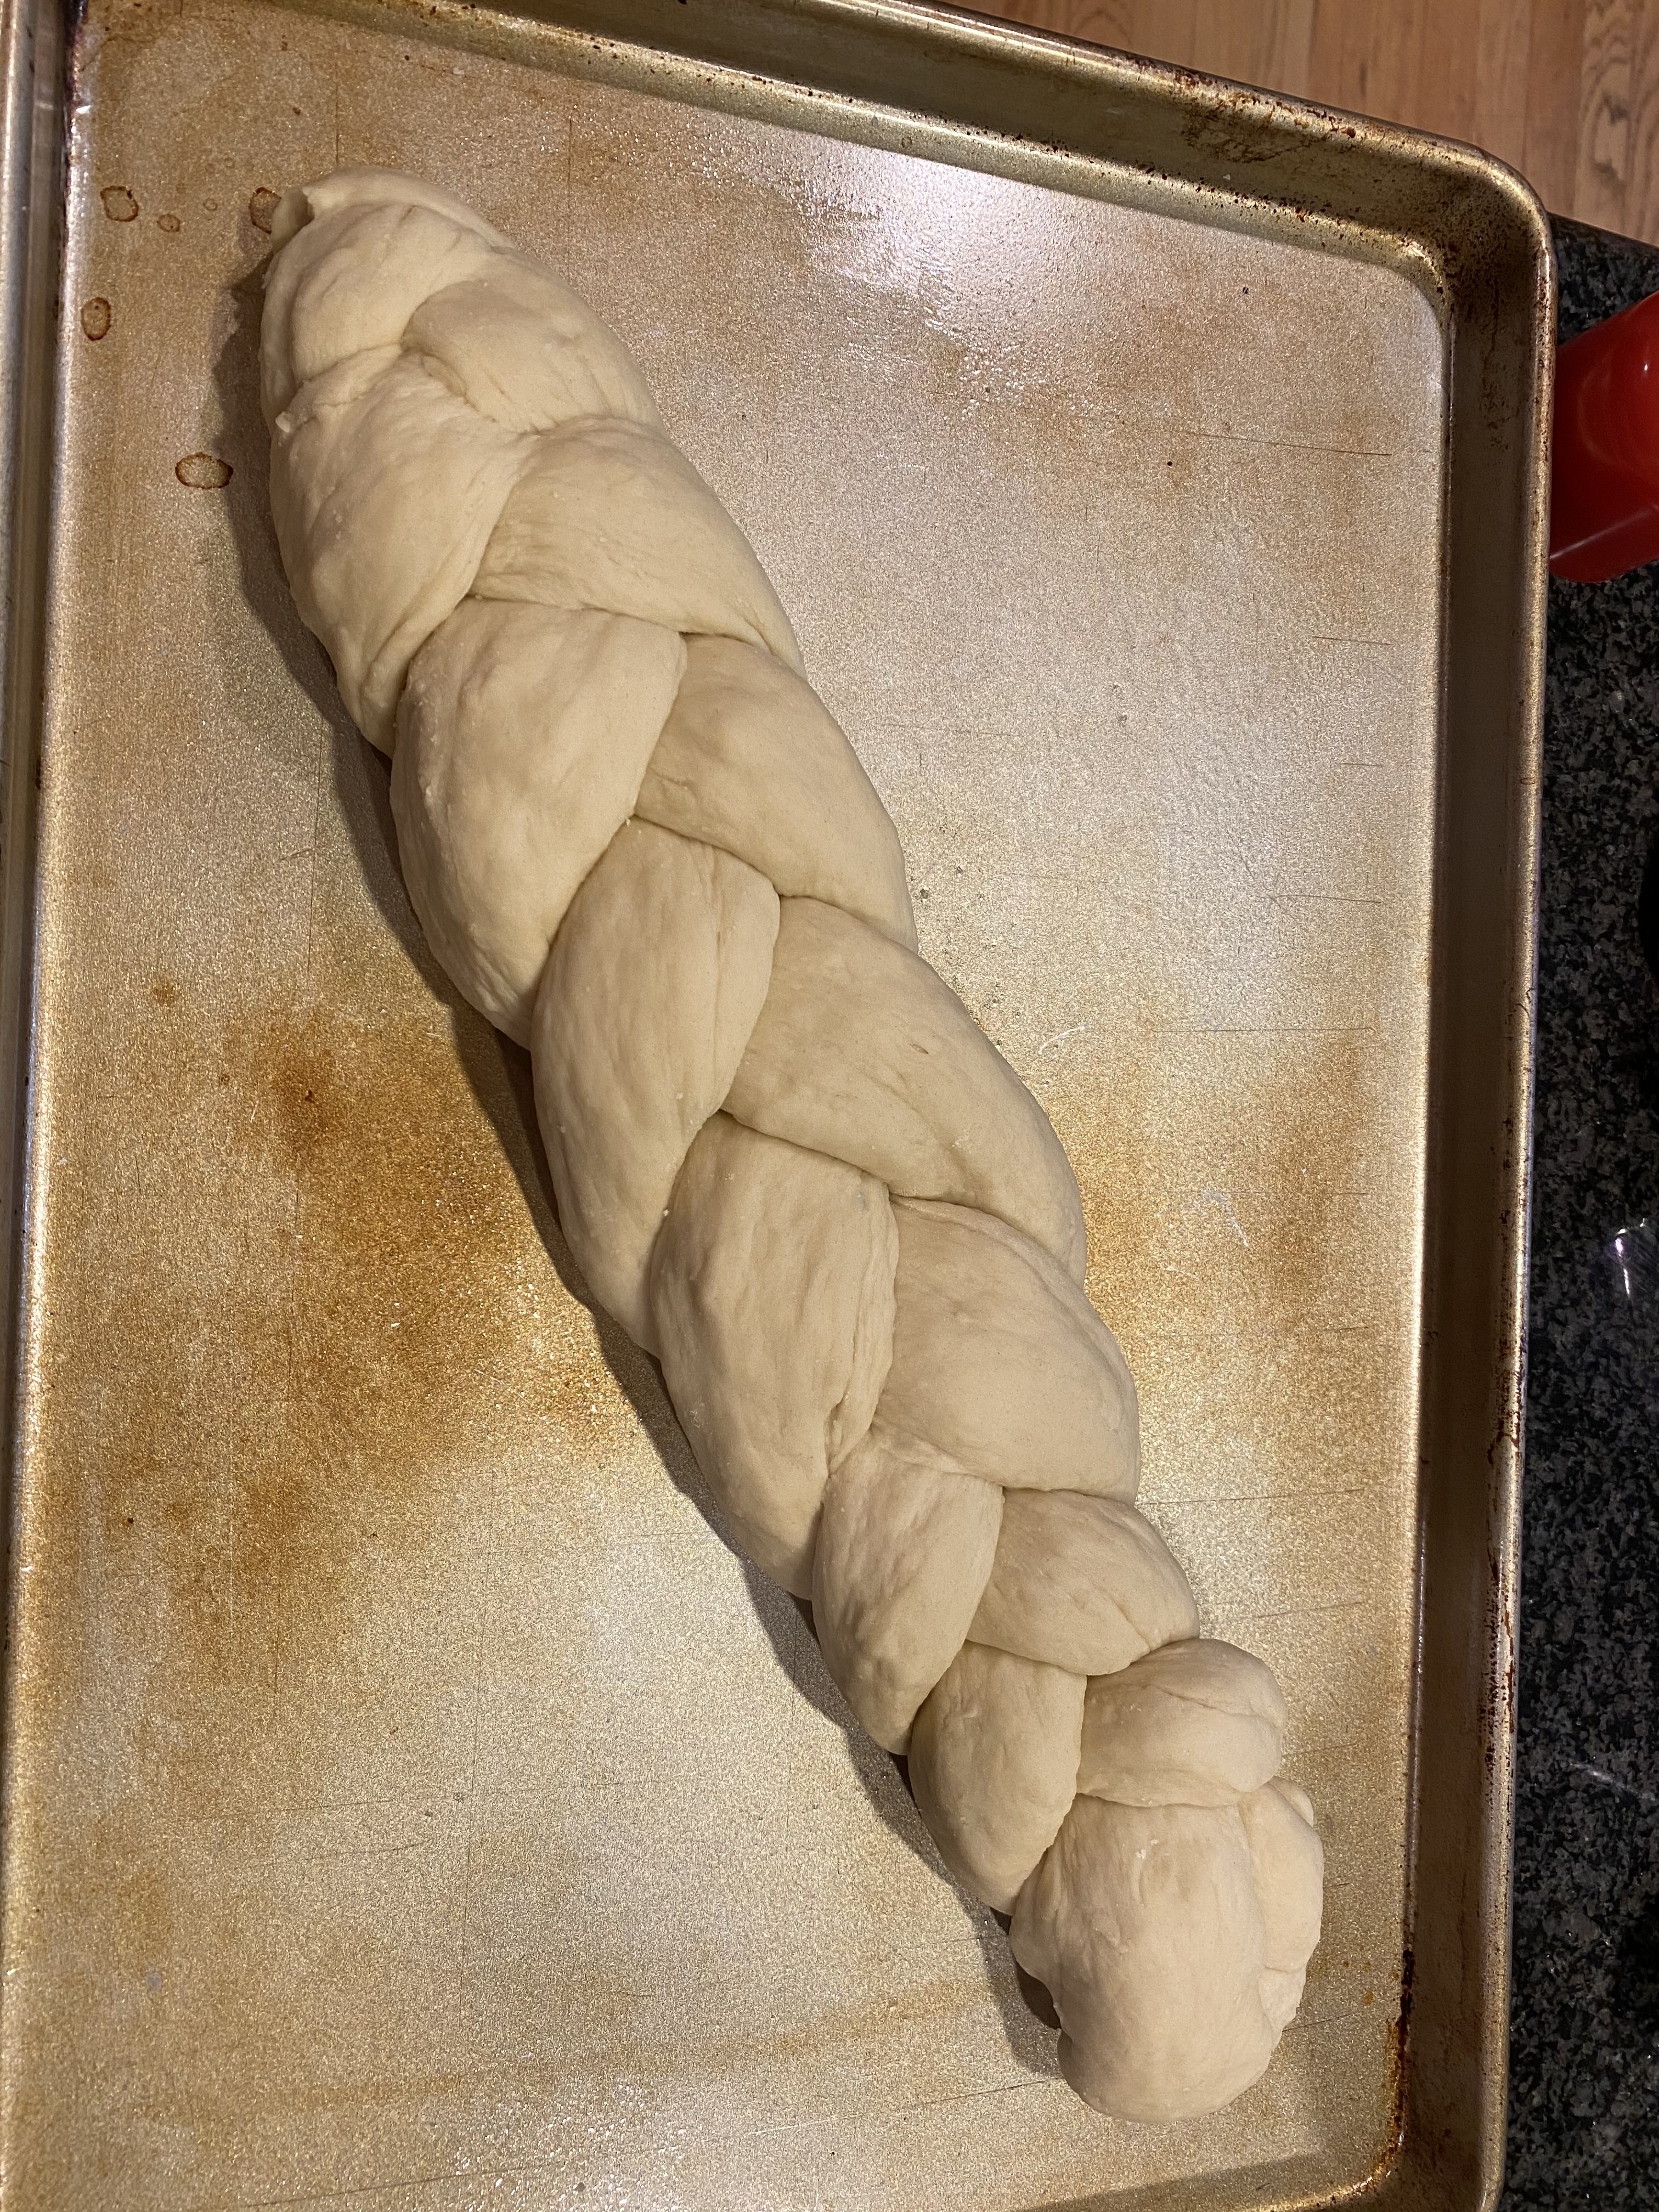 This is how you make challah bread braid.